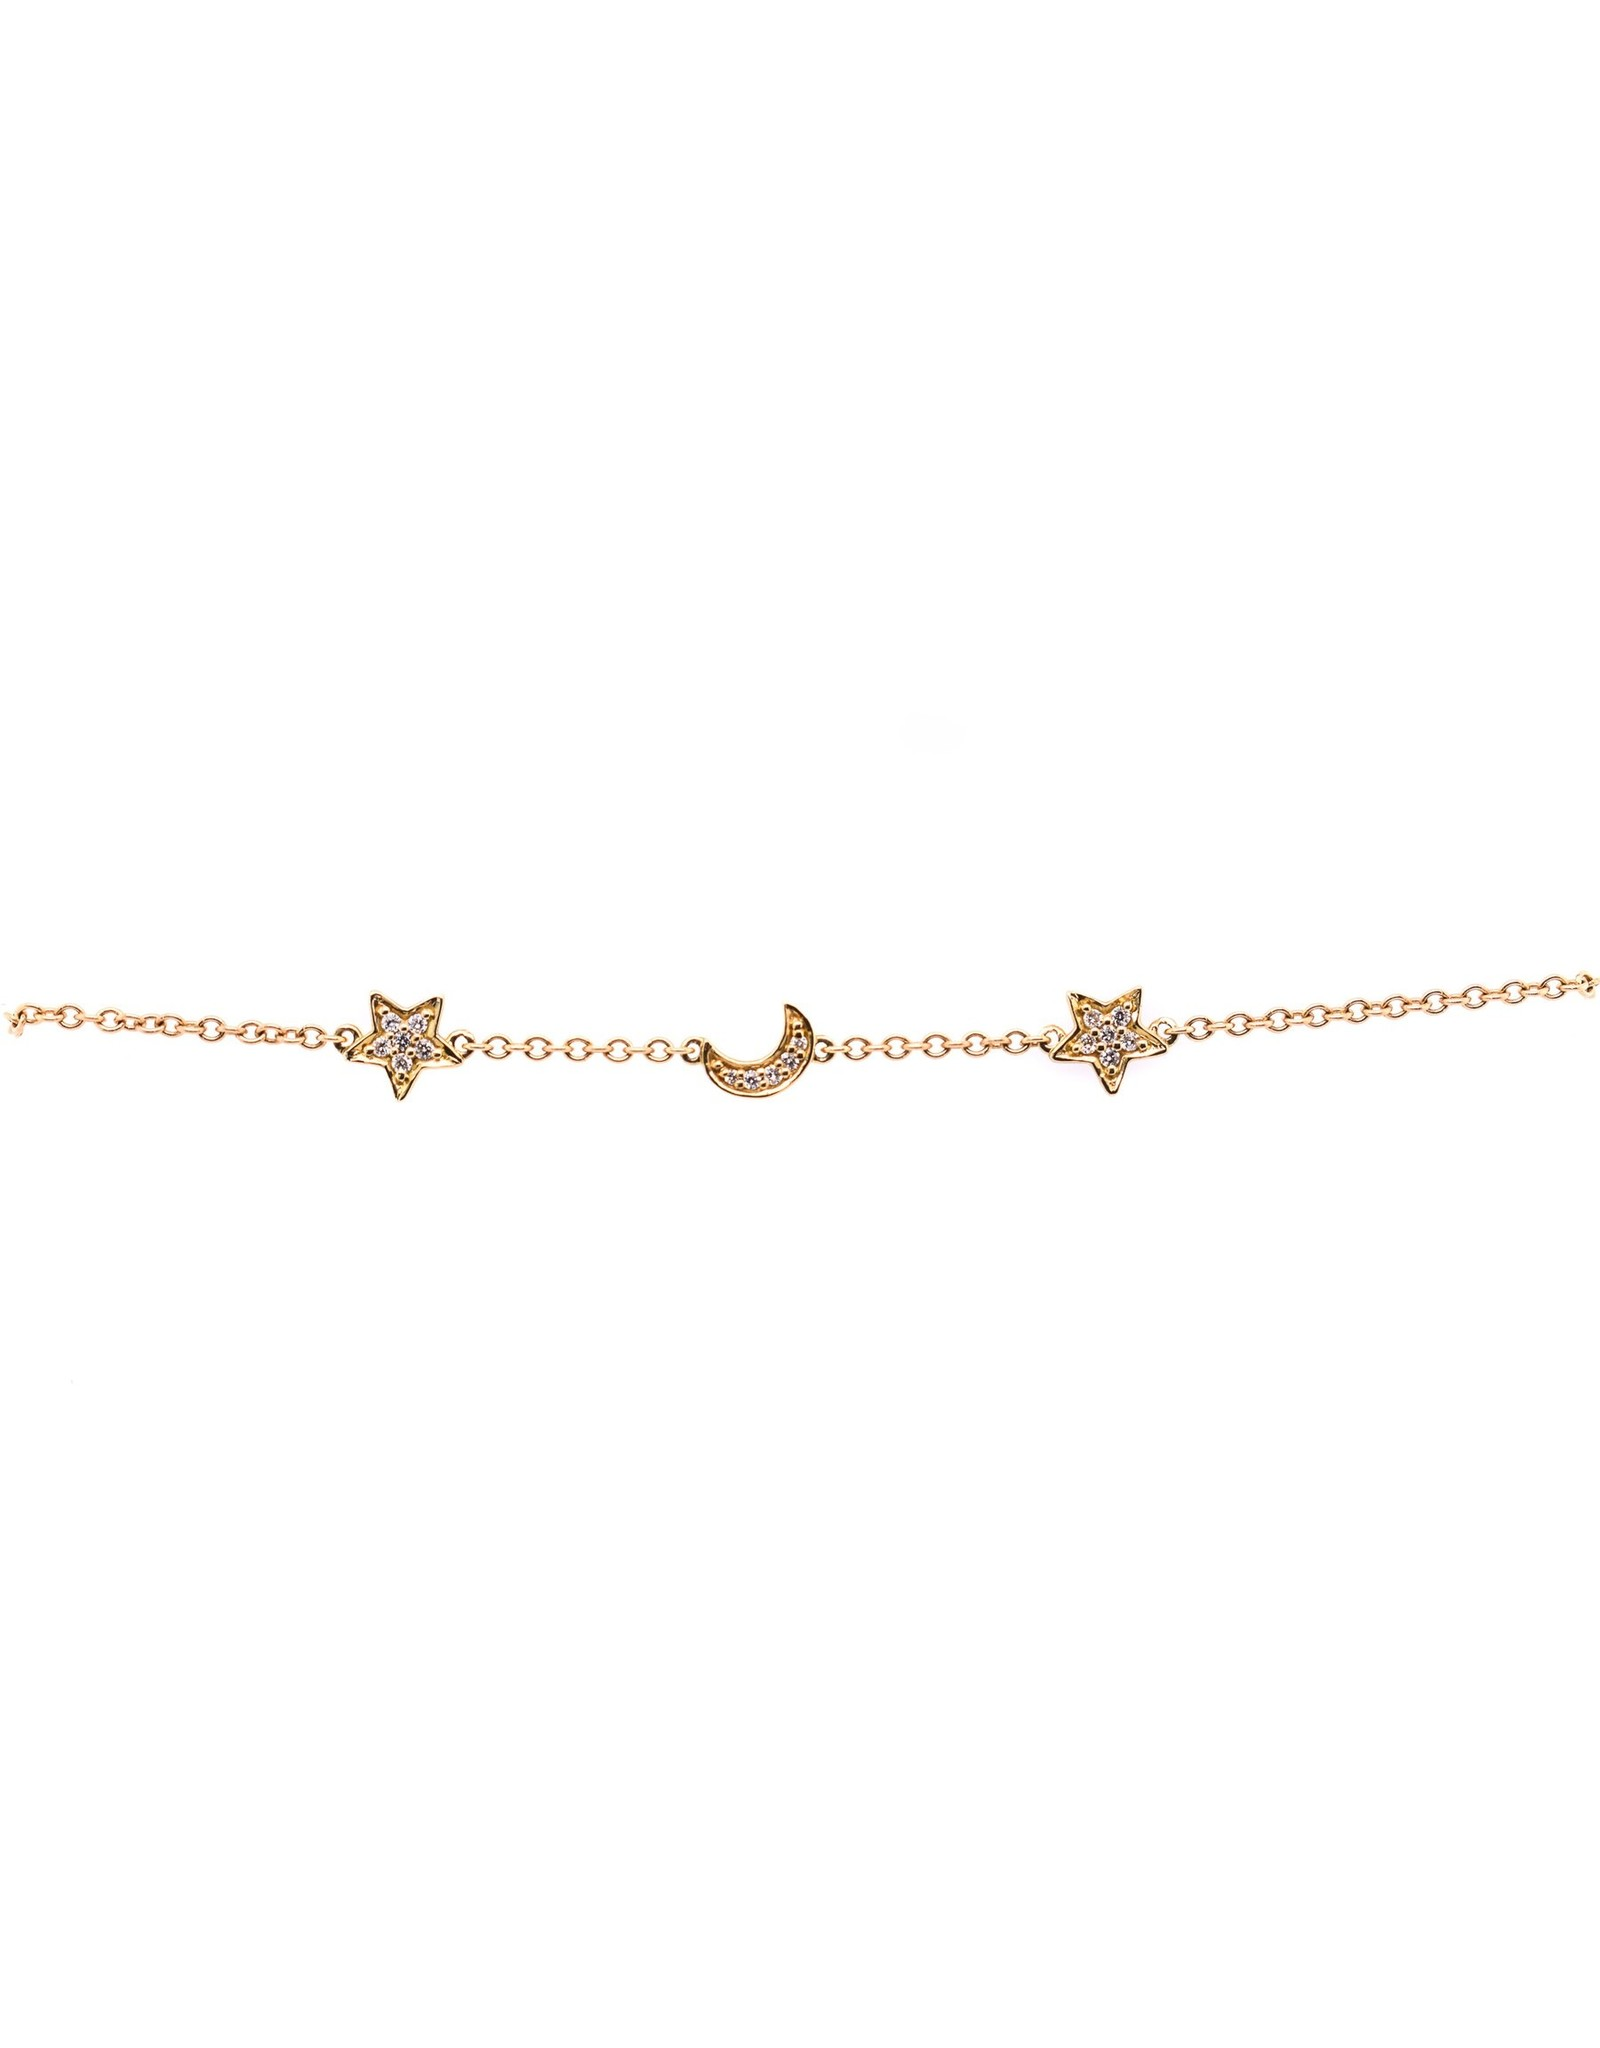 14K Rose Gold Dainty Diamond Star and Moon Bracelet, D: 0.10ct